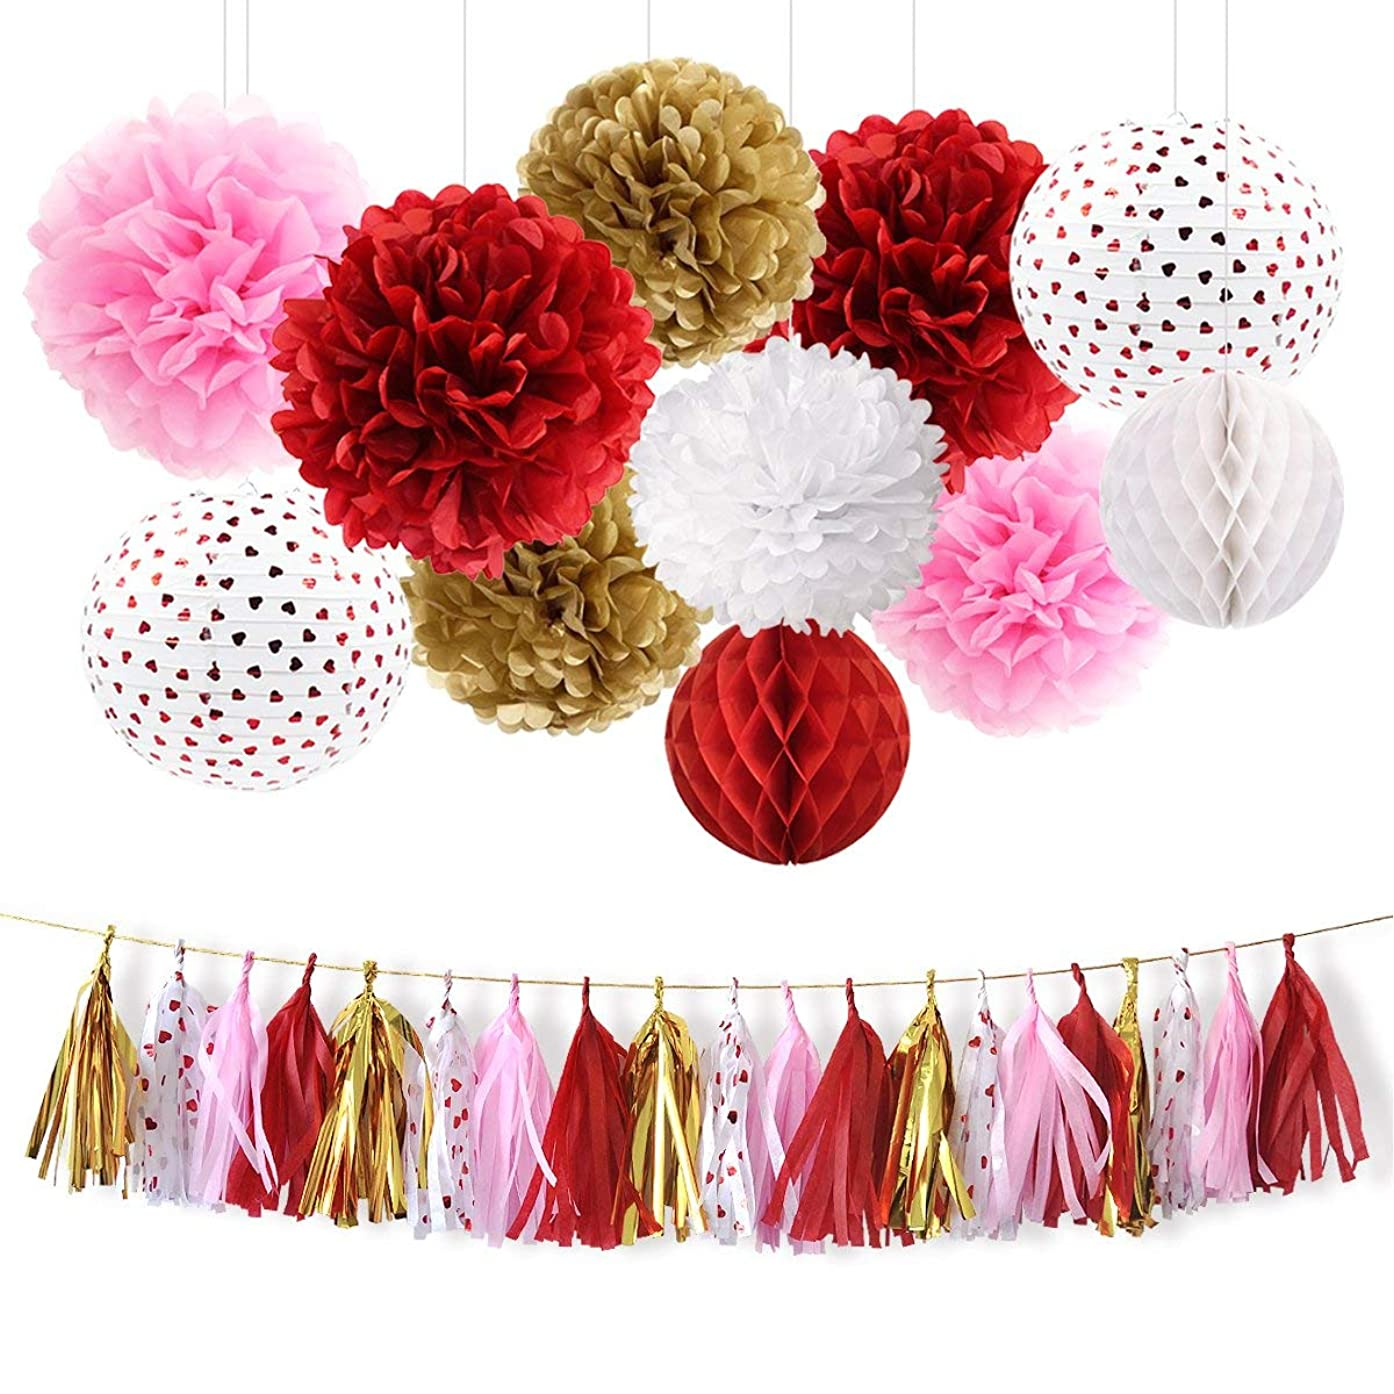 NICROLANDEE Red and Pink Party Decoration Kit Tissue Pom Poms Flowers Romance Red Heart Foil Paper Lantern String Party Tassel Garland for Mother's Day Wedding Bridal Shower Baby Shower Women Birthday